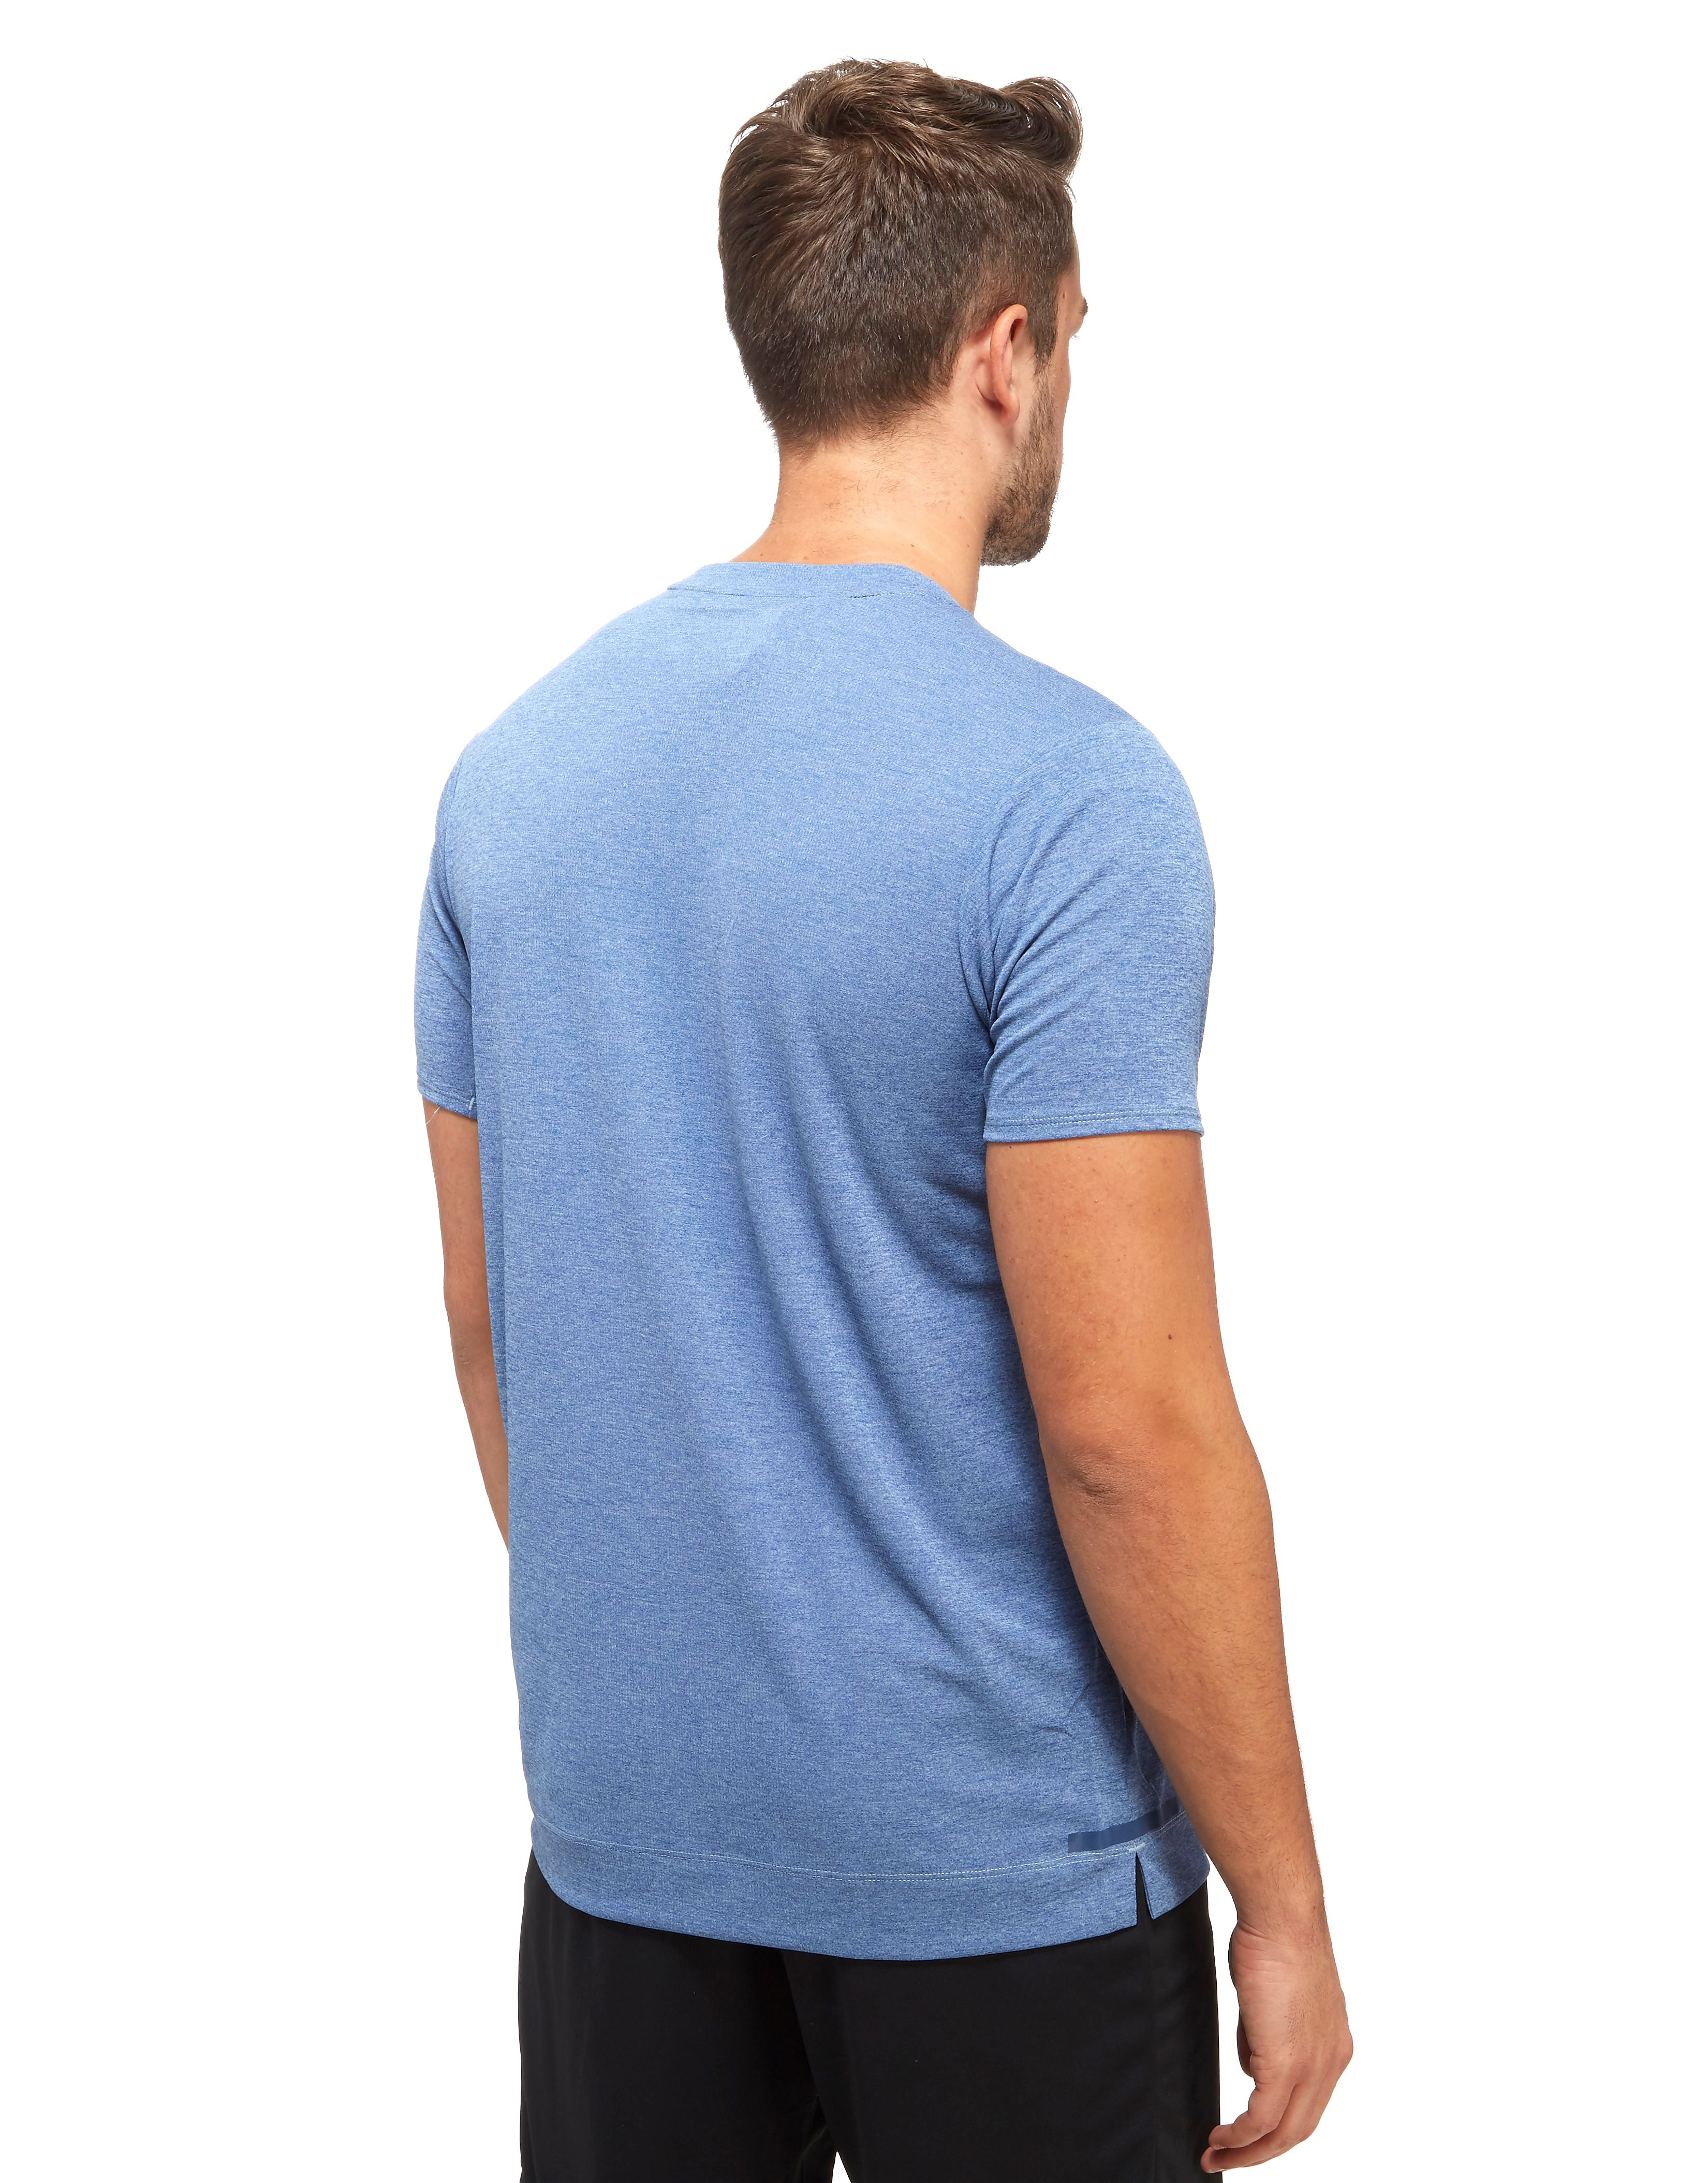 adidas T-shirt Freelift Climachill Homme